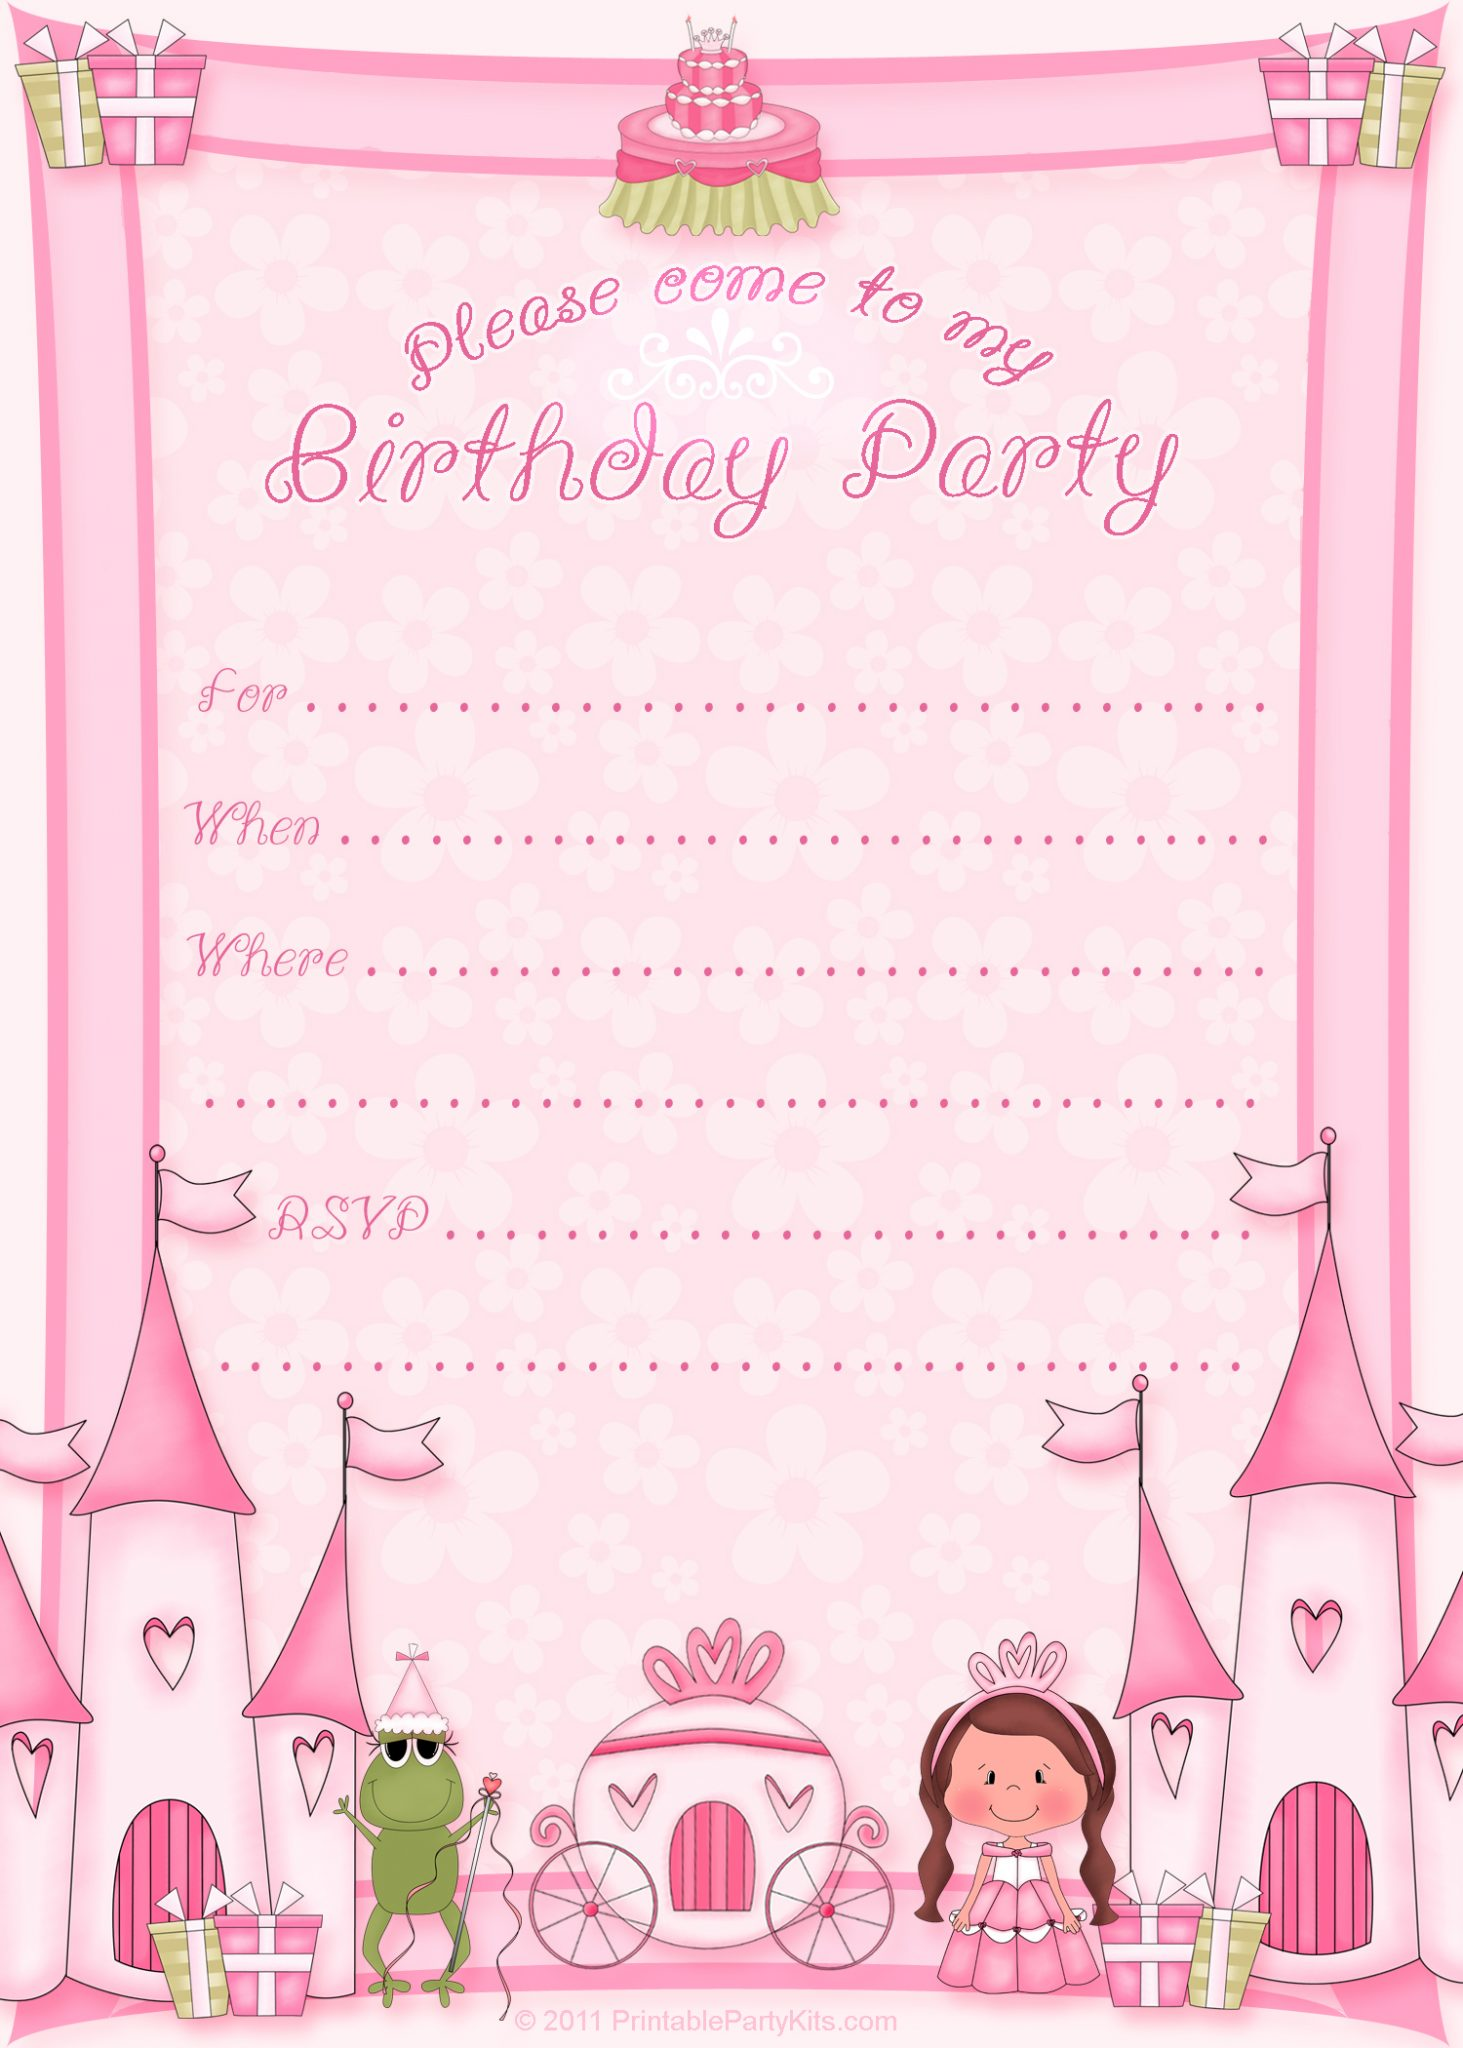 50 Free Birthday Invitation Templates You Will Love These – Free Party Invitation Designs